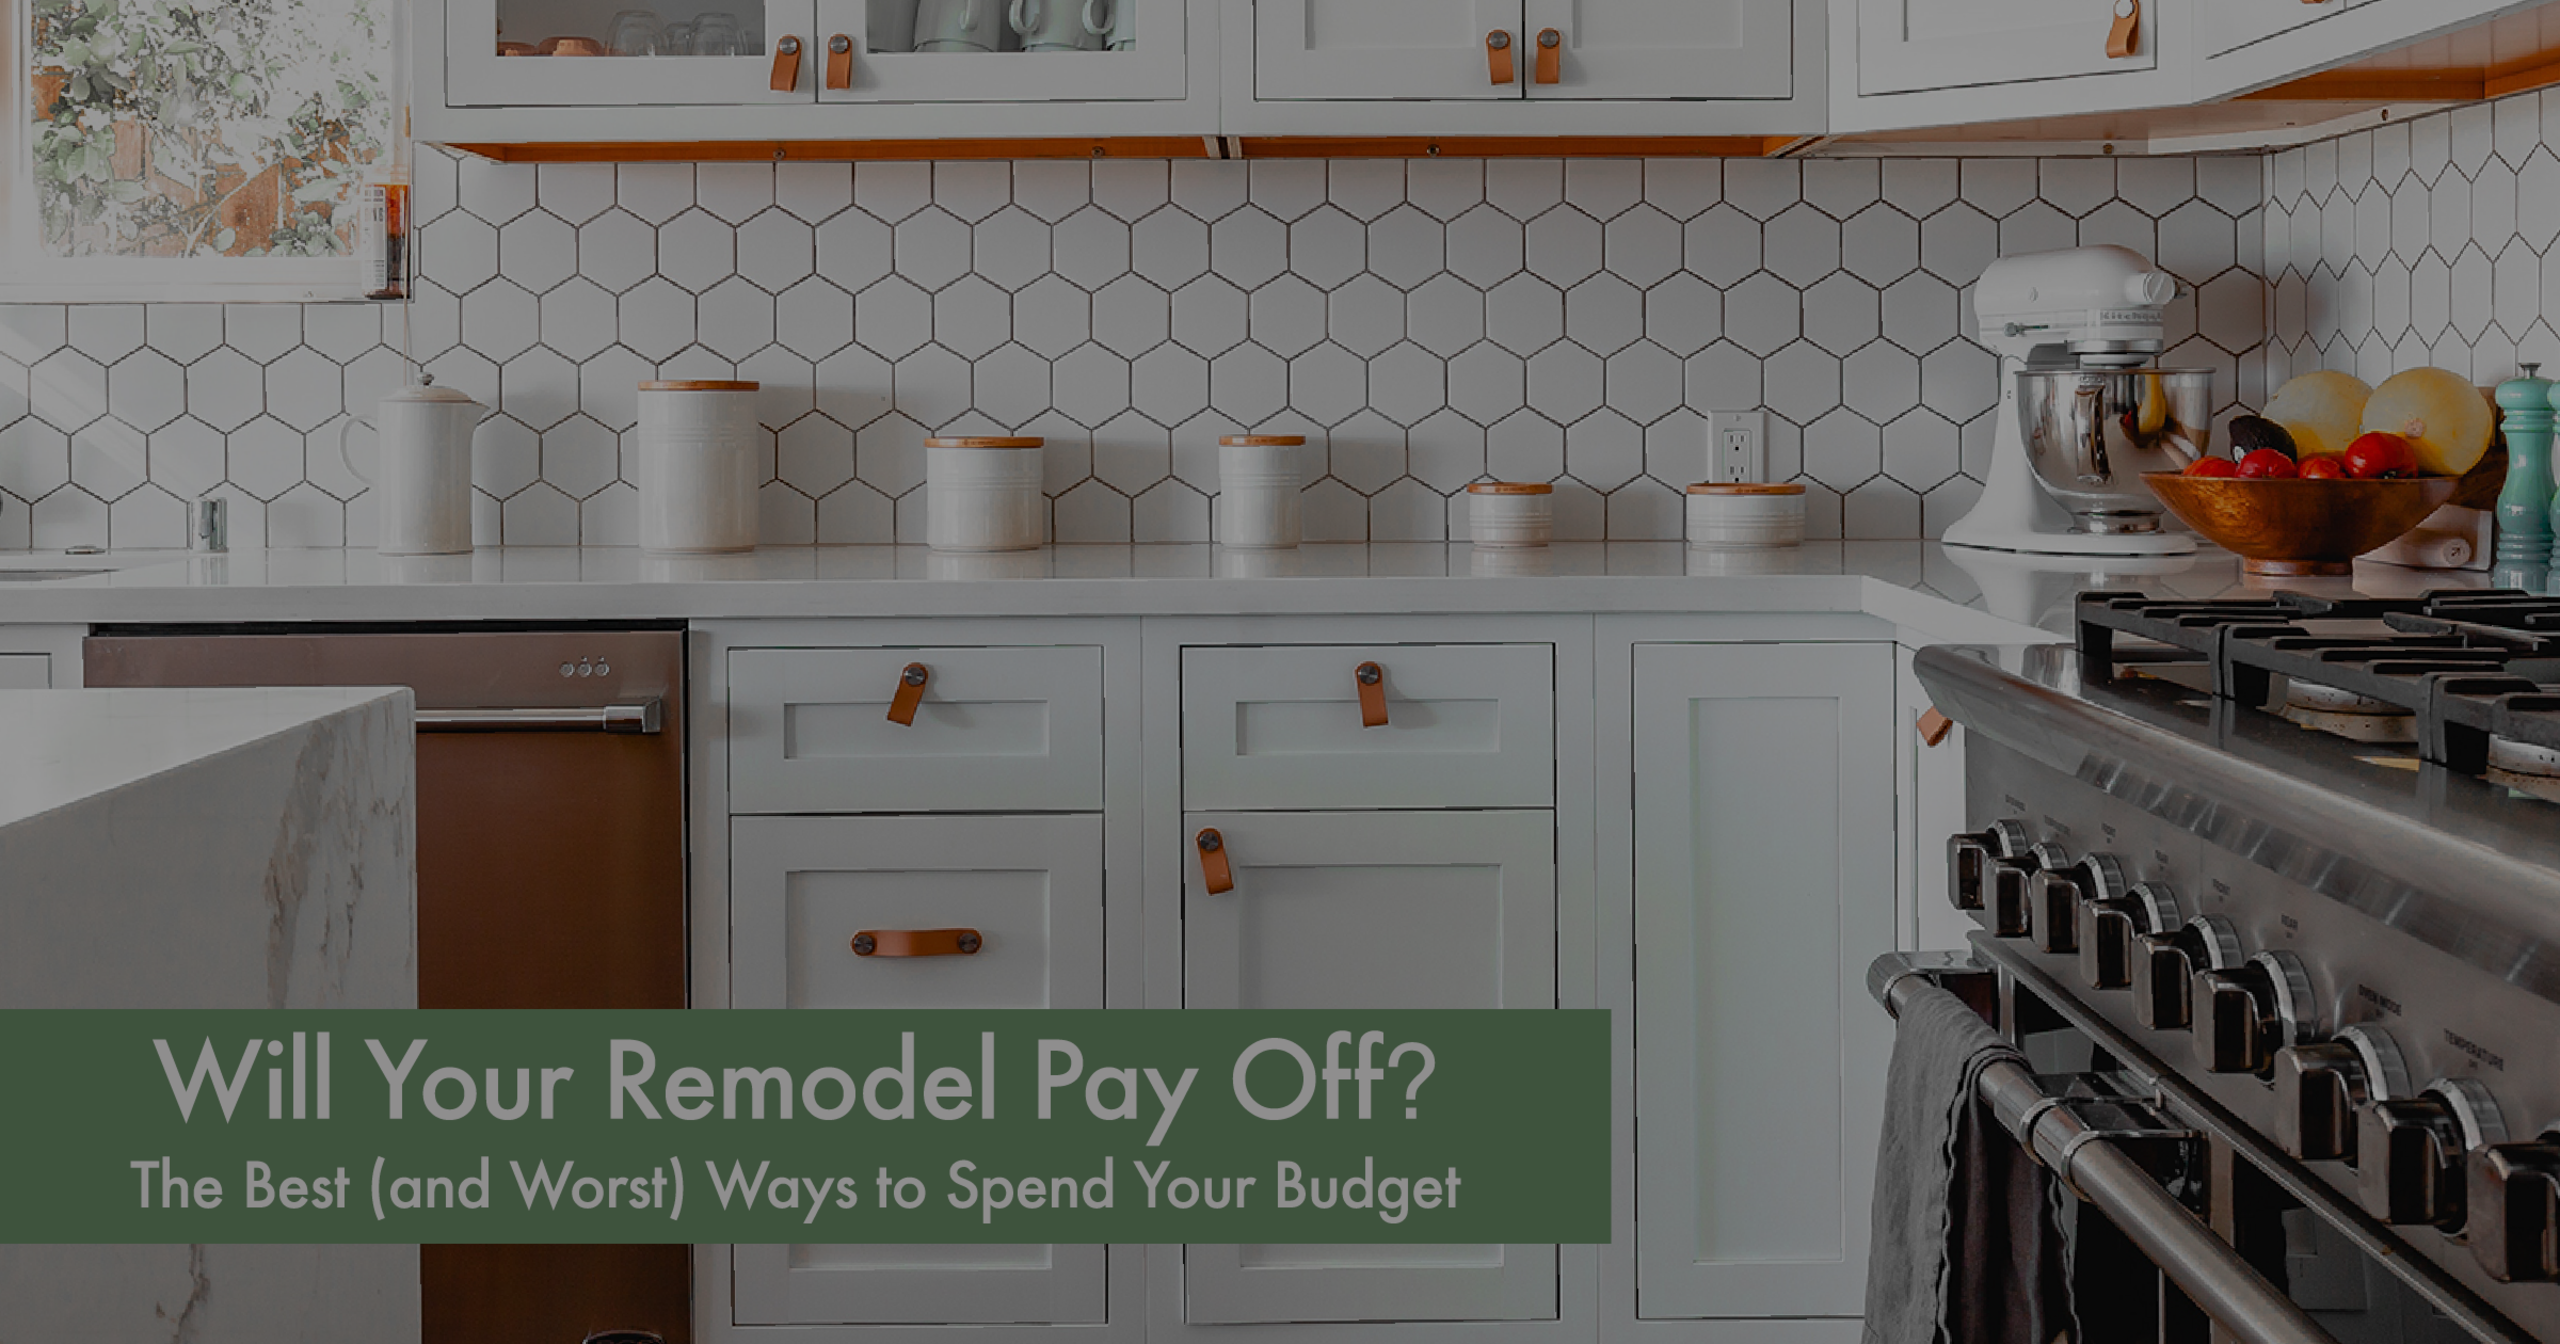 Will Your Remodel Pay Off? The Best (and Worst) Ways to Spend Your Budget